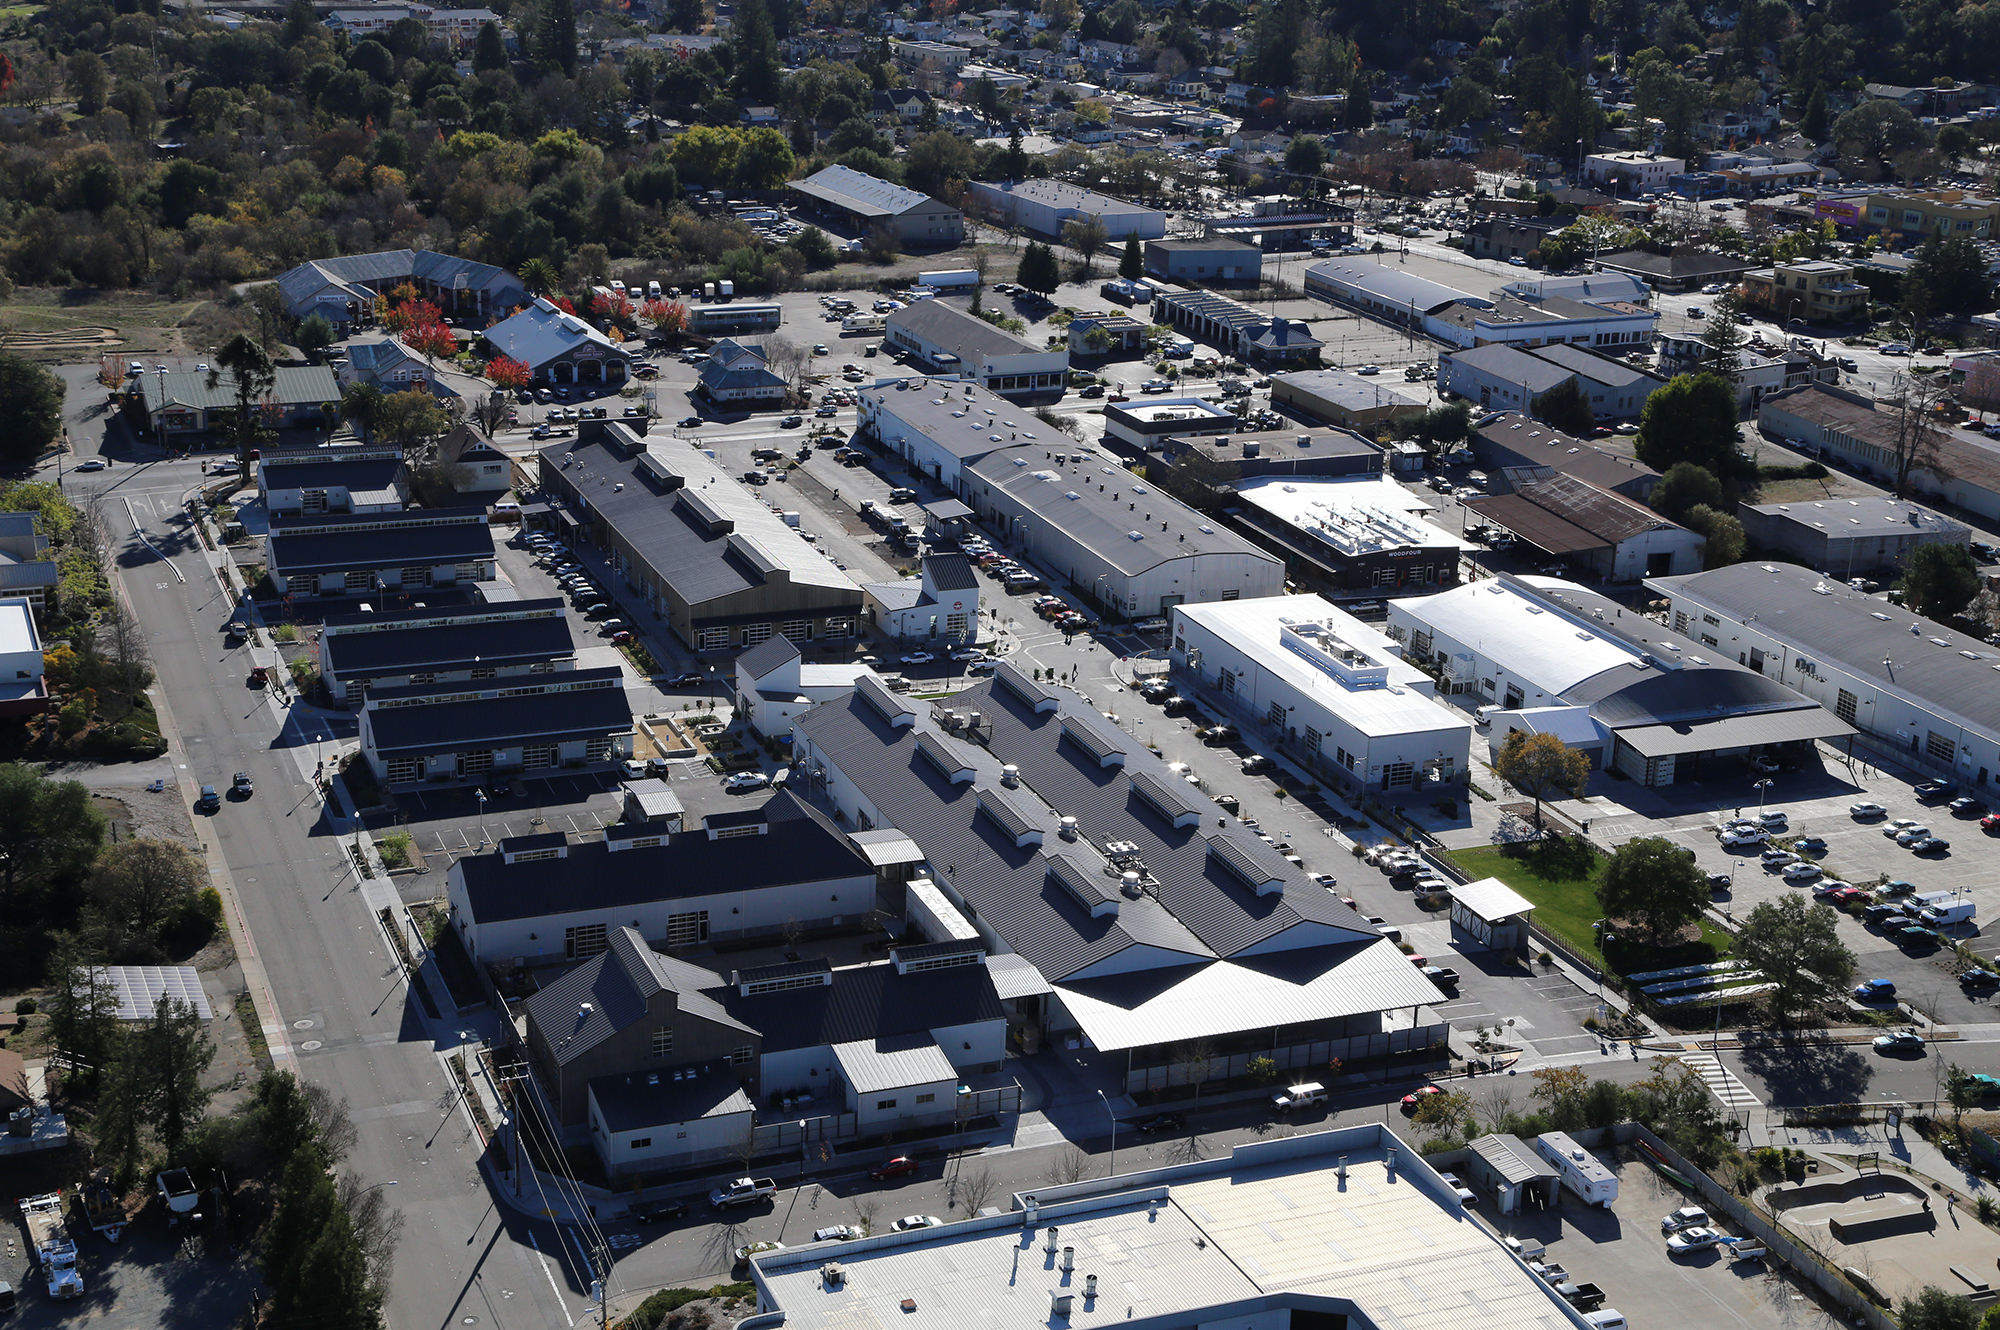 Aerial View of the Barlow Center Sebastopol